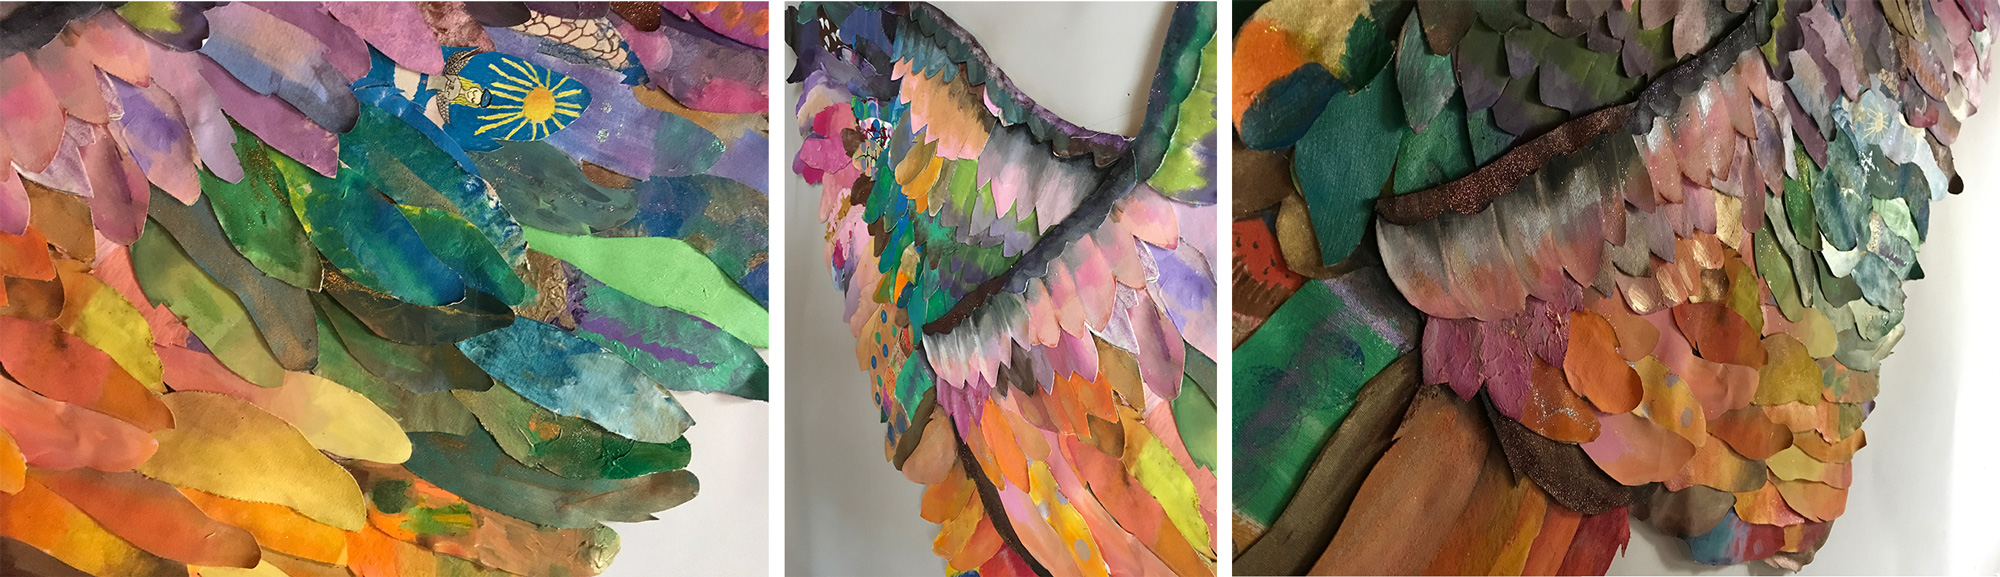 Spread Your Wings, Detail